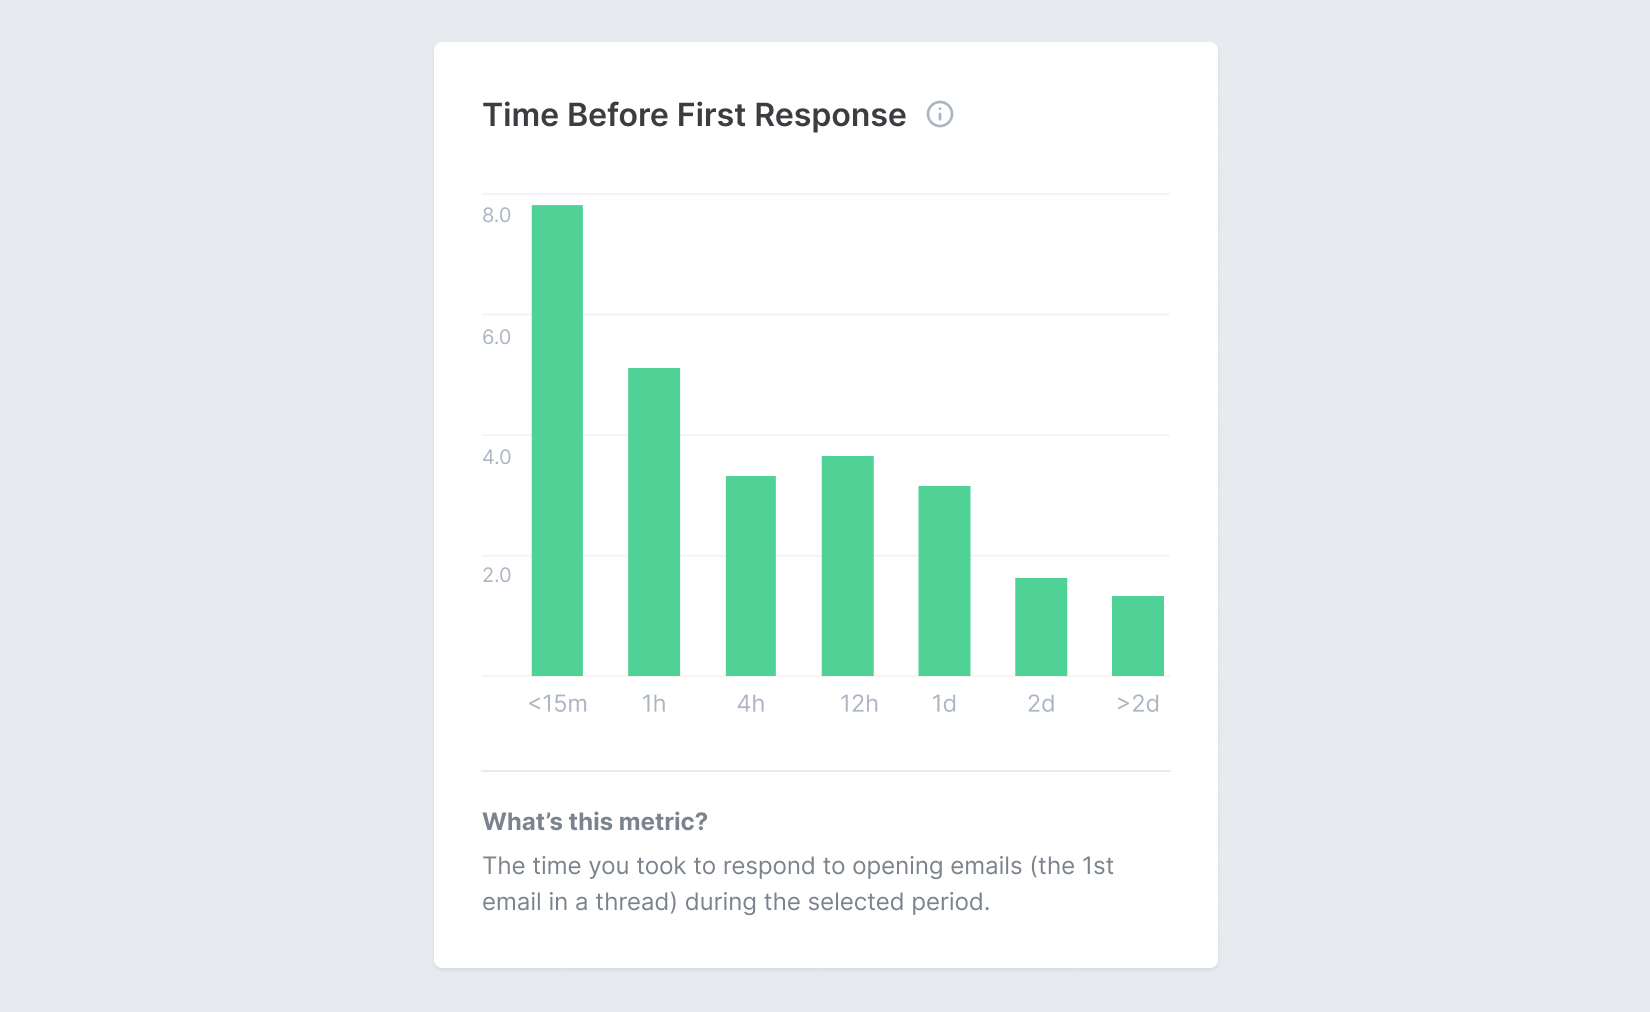 Screenshot of Email Meter, showing analytics and metrics about Time Before First Response Time